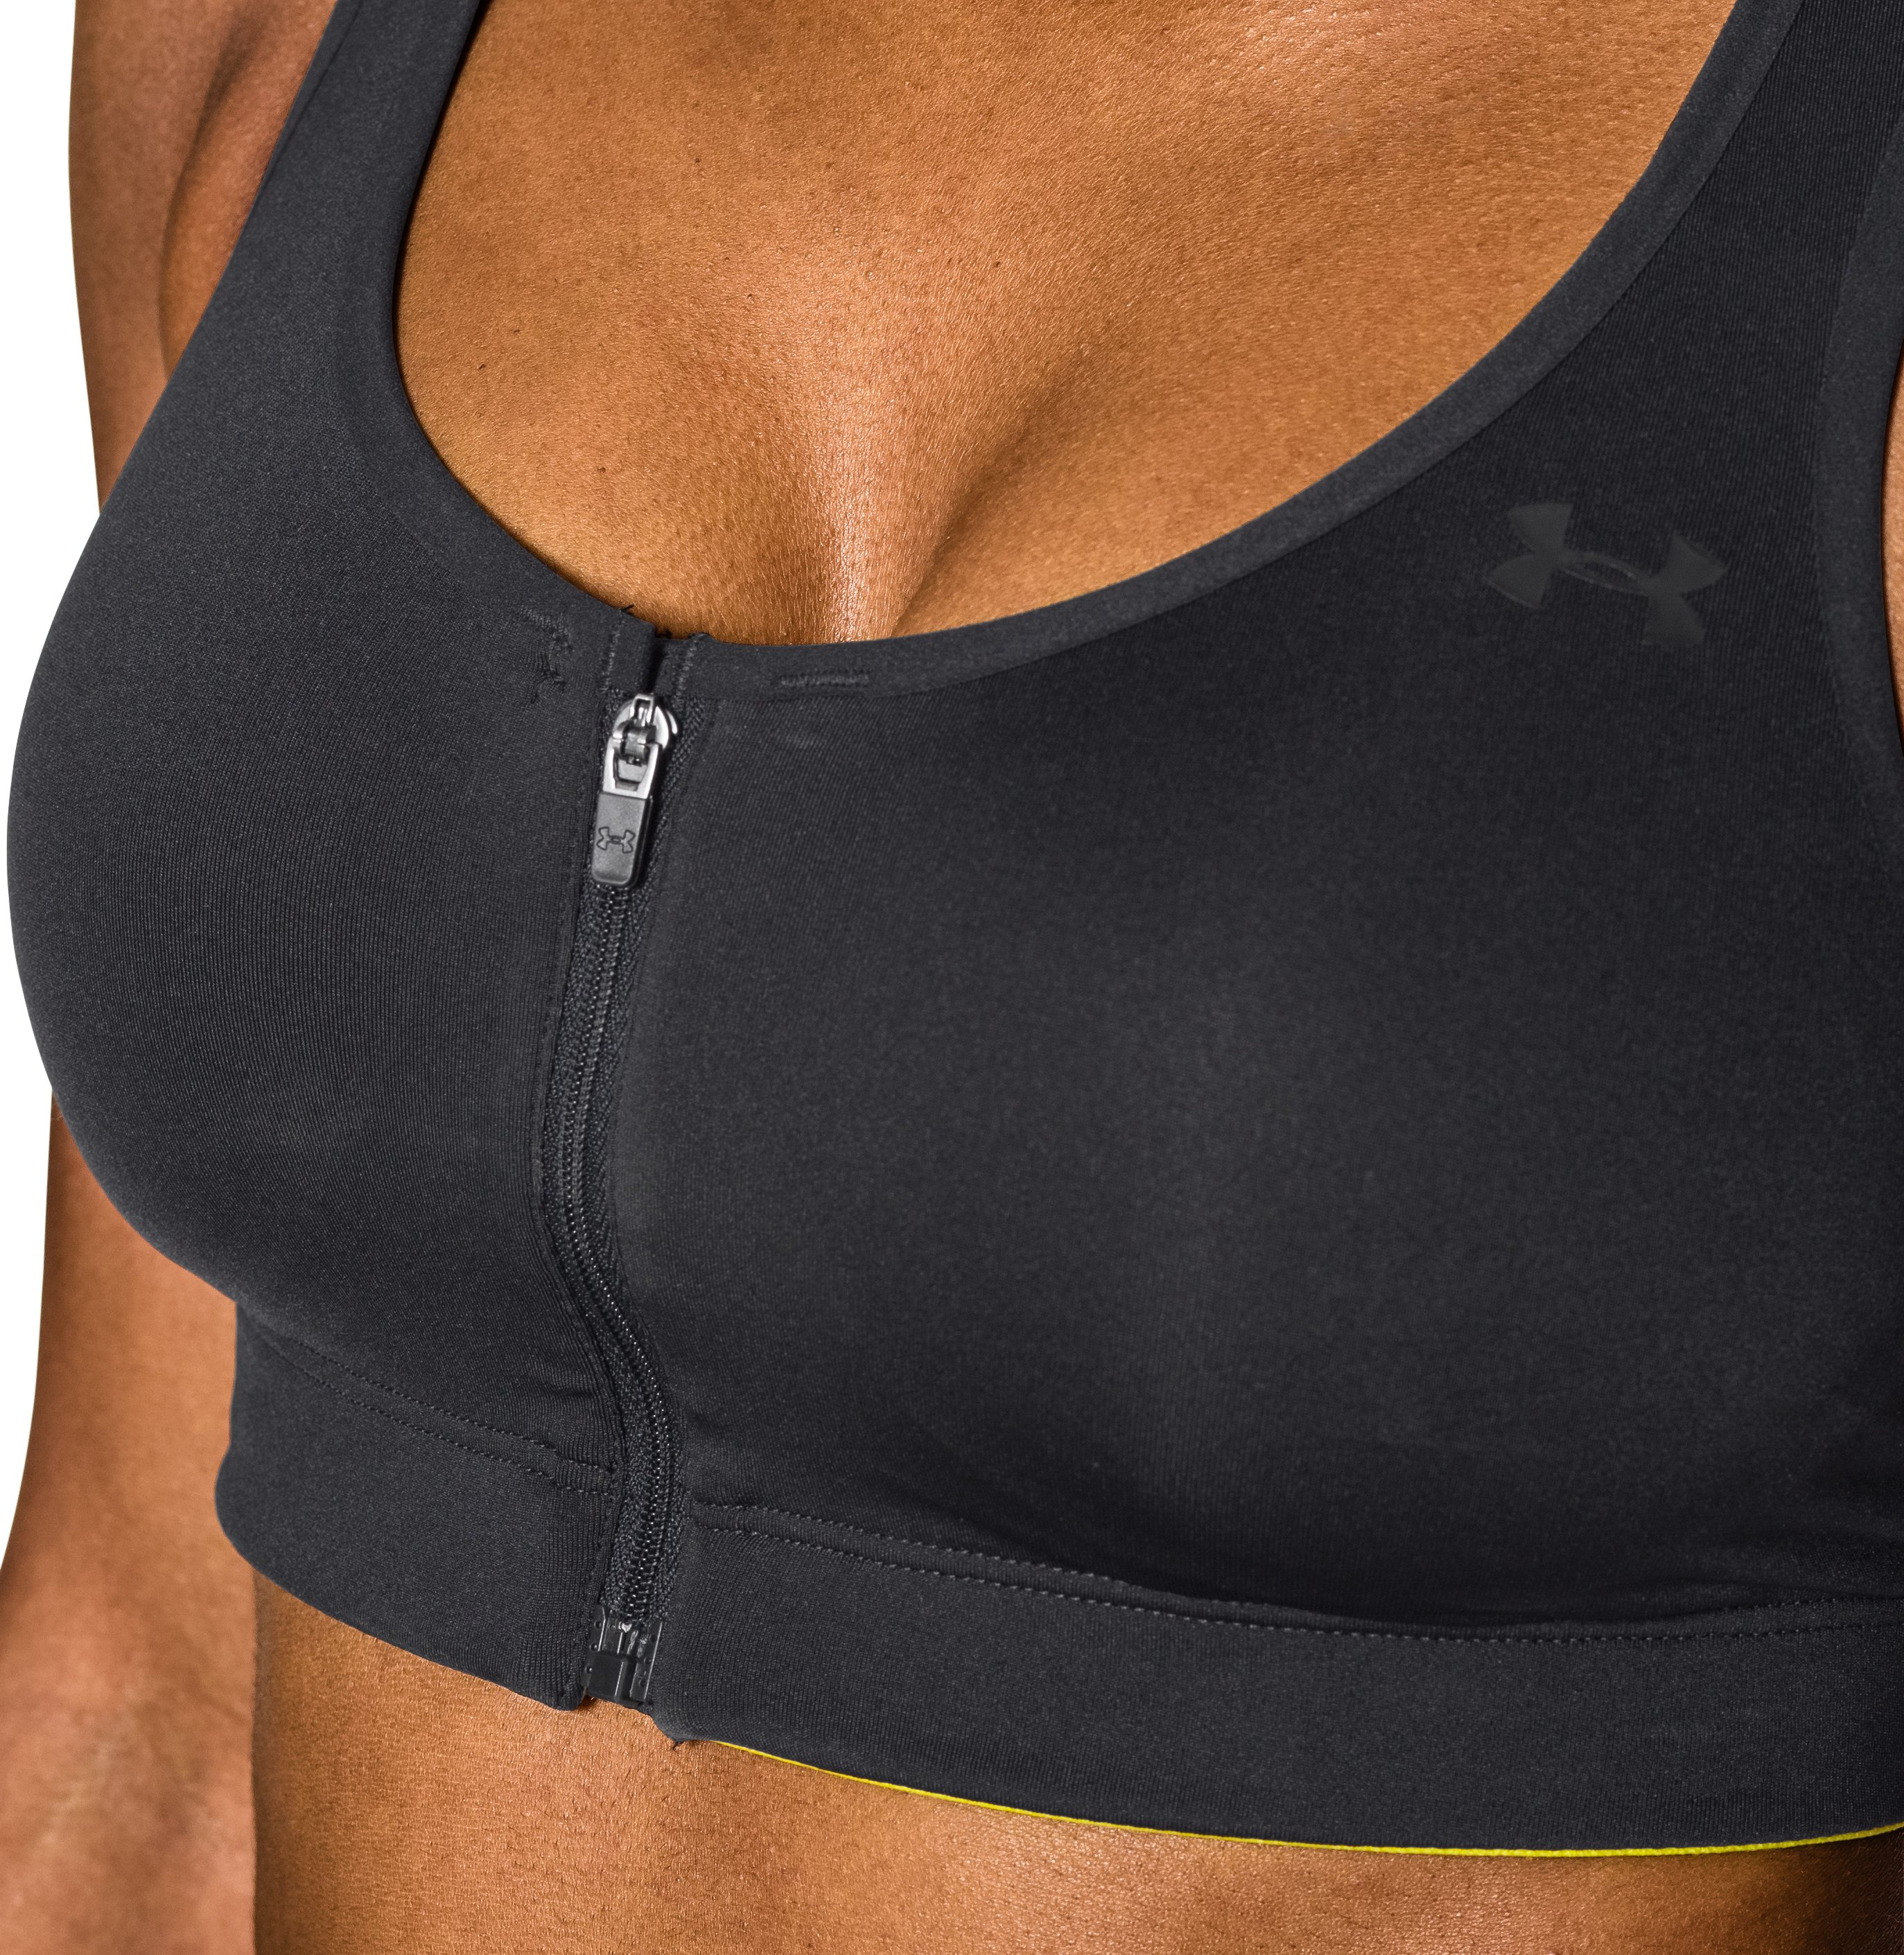 Armour Bra® Protegée A Cup, Black